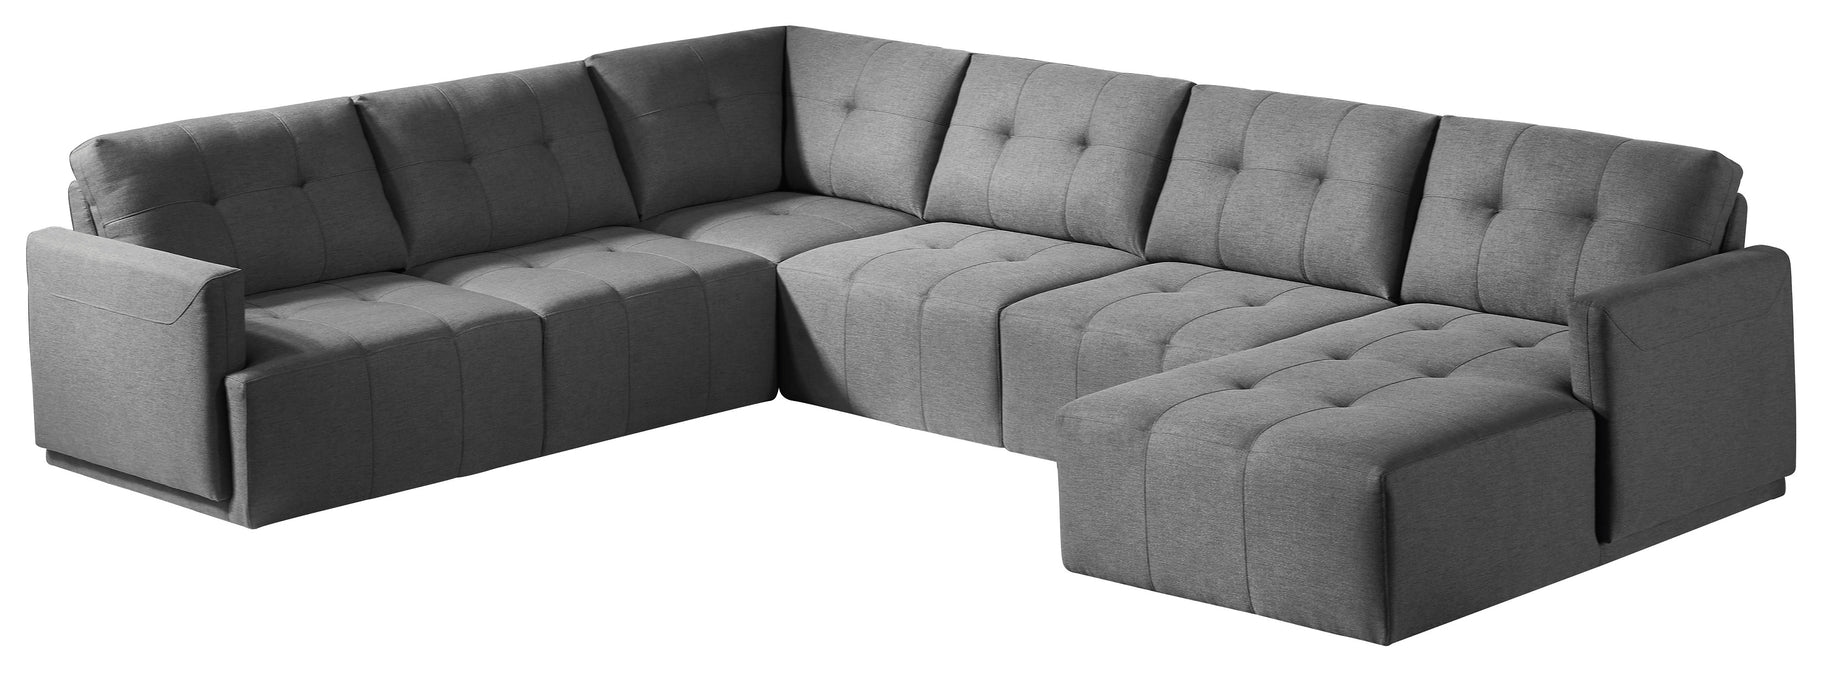 New Classic Furniture | Living Sectional in New Jersey, NJ 6395